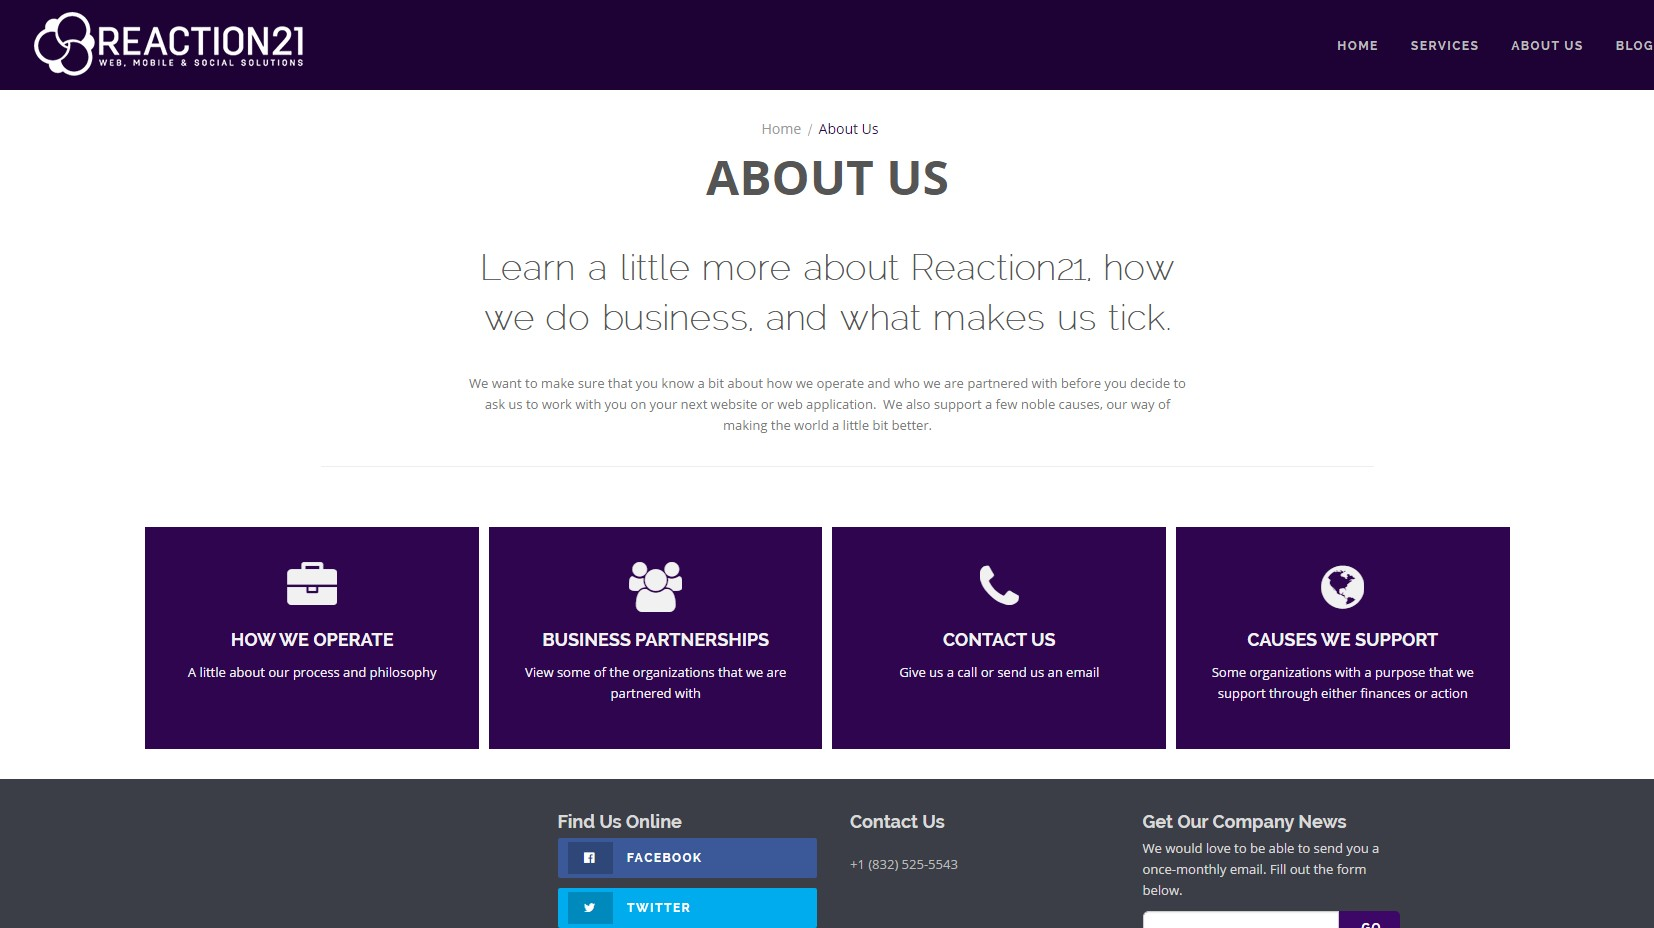 Reaction21 Website Landing Page Redesign